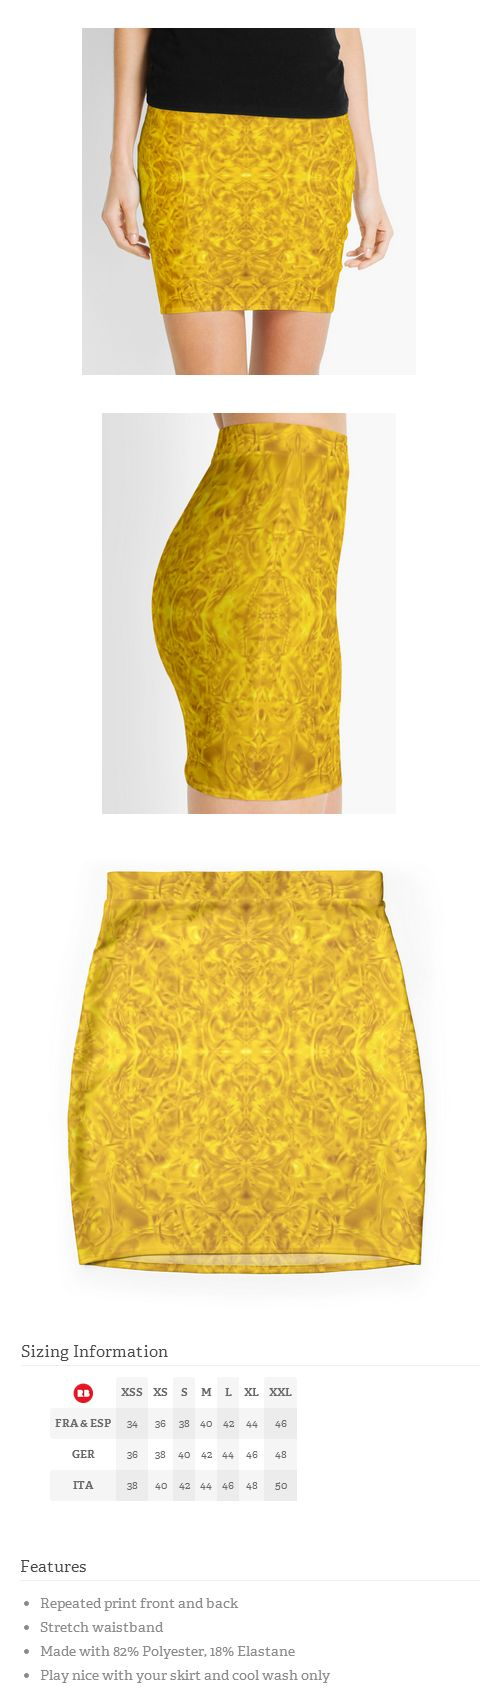 #Lovely #golden #print #skirt.